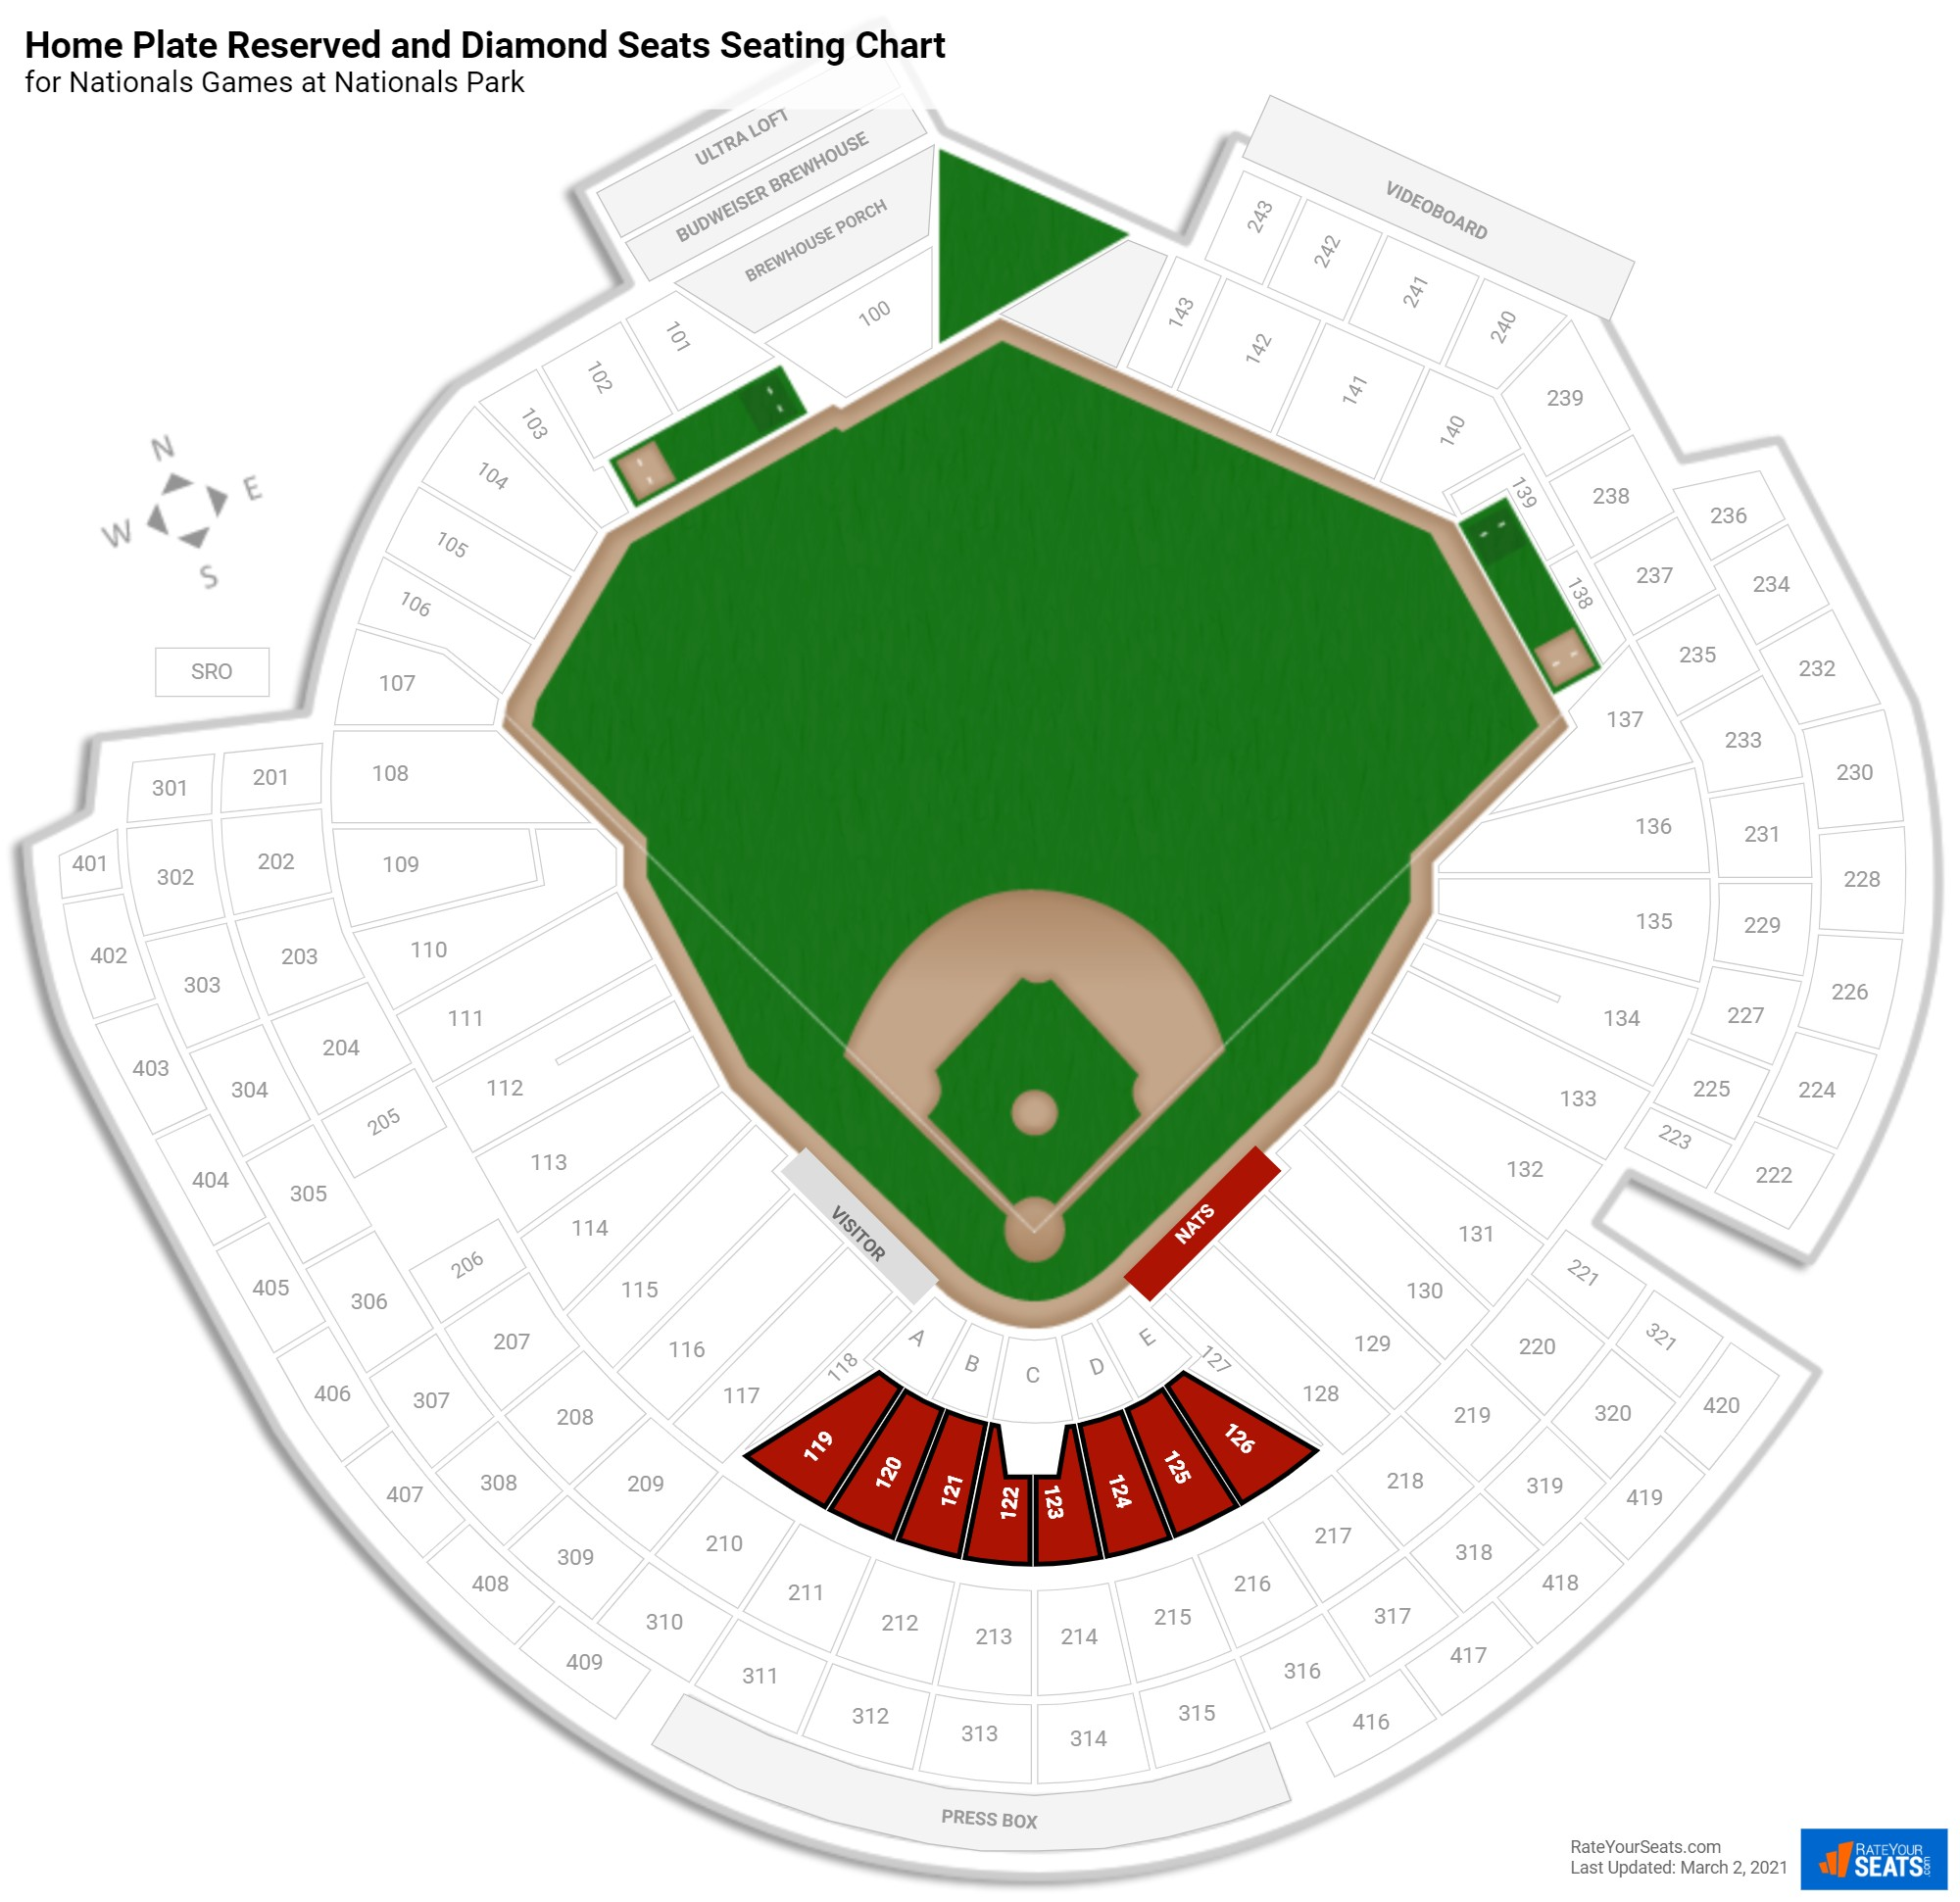 Nationals Park Home Plate Reserved and Diamond Seats seating chart